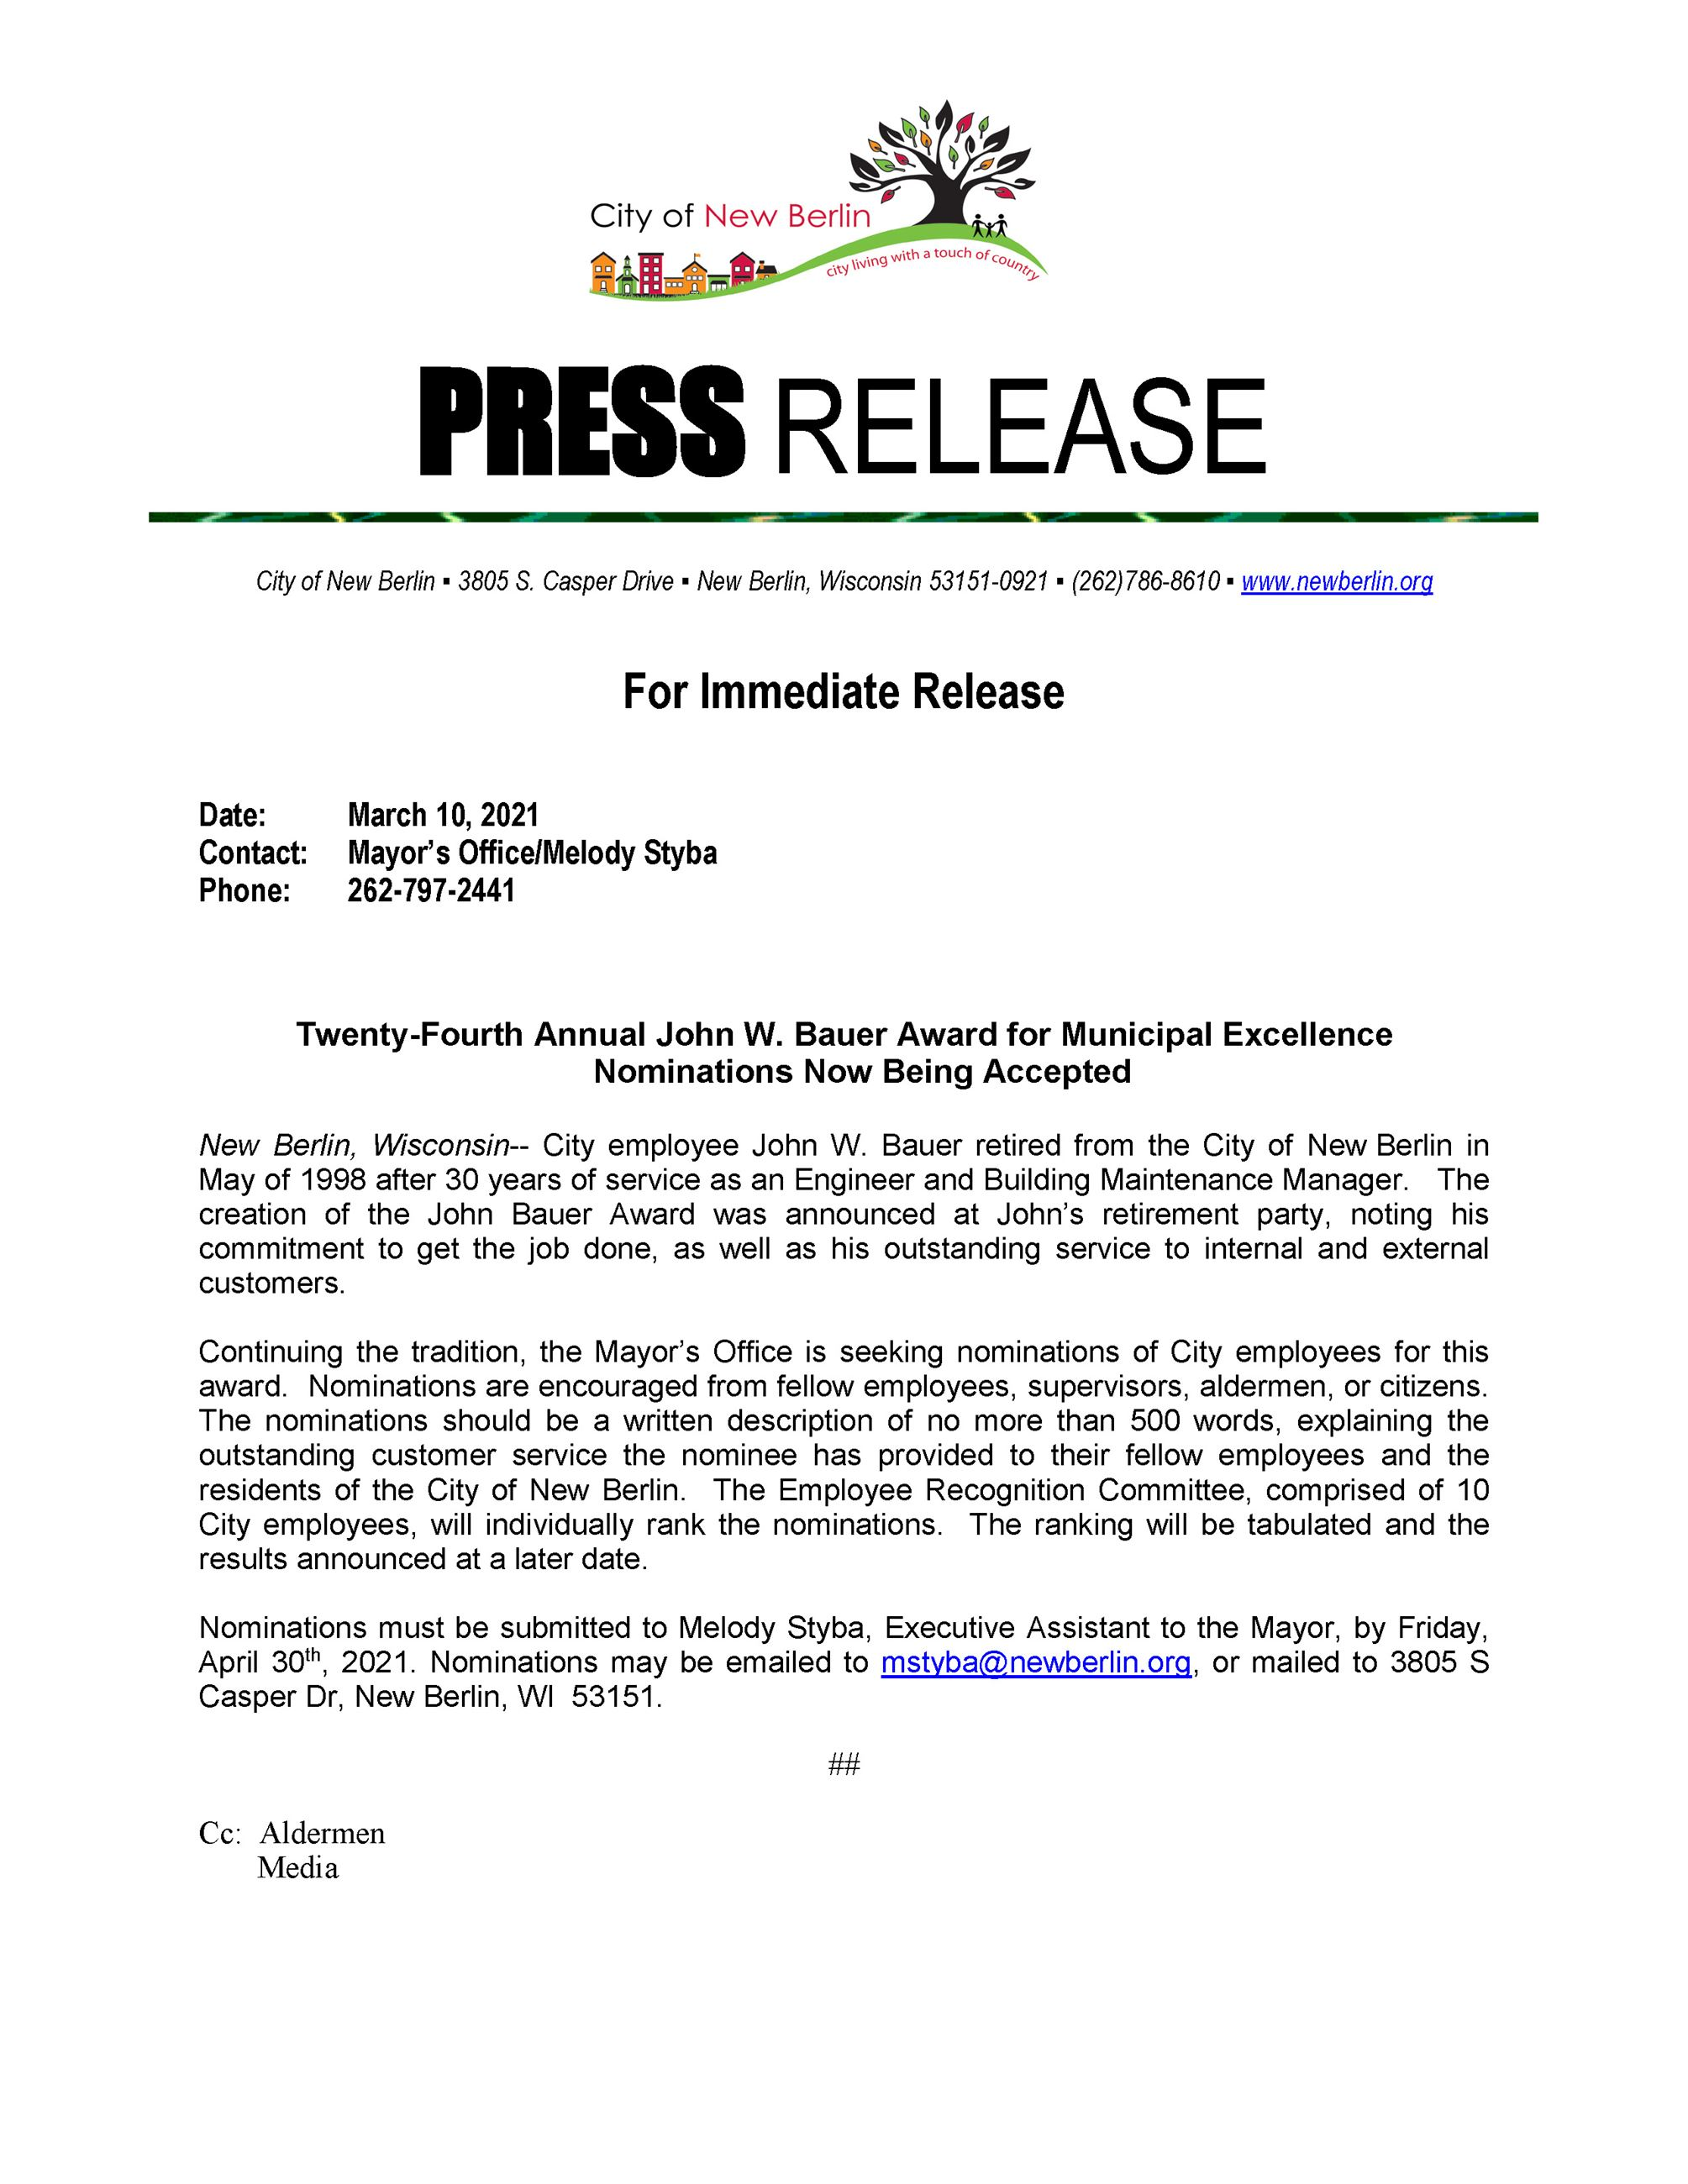 2021 Press Release Seeking Nominations